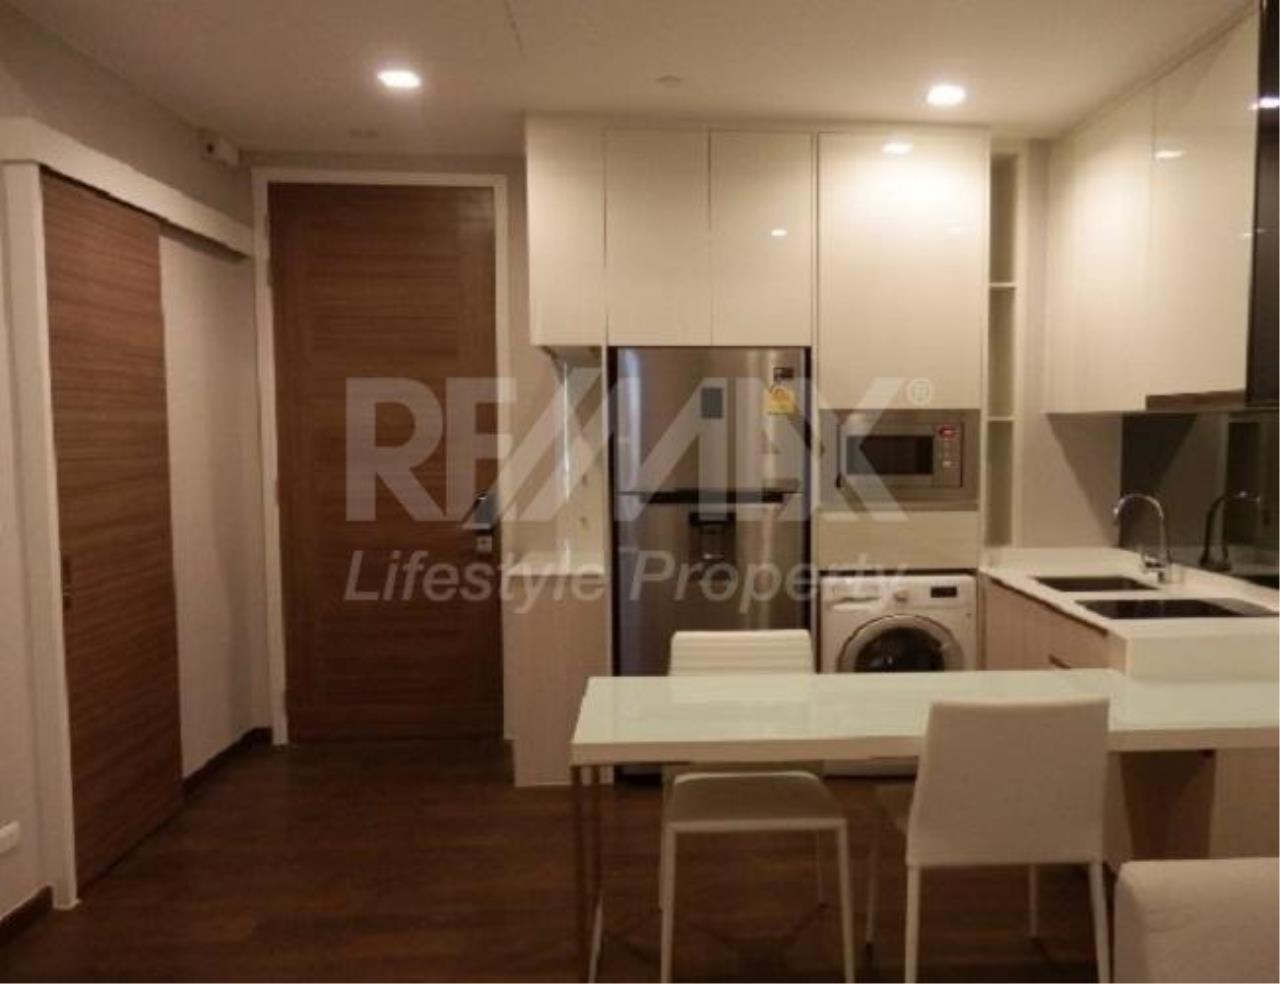 RE/MAX LifeStyle Property Agency's Q Asoke 1